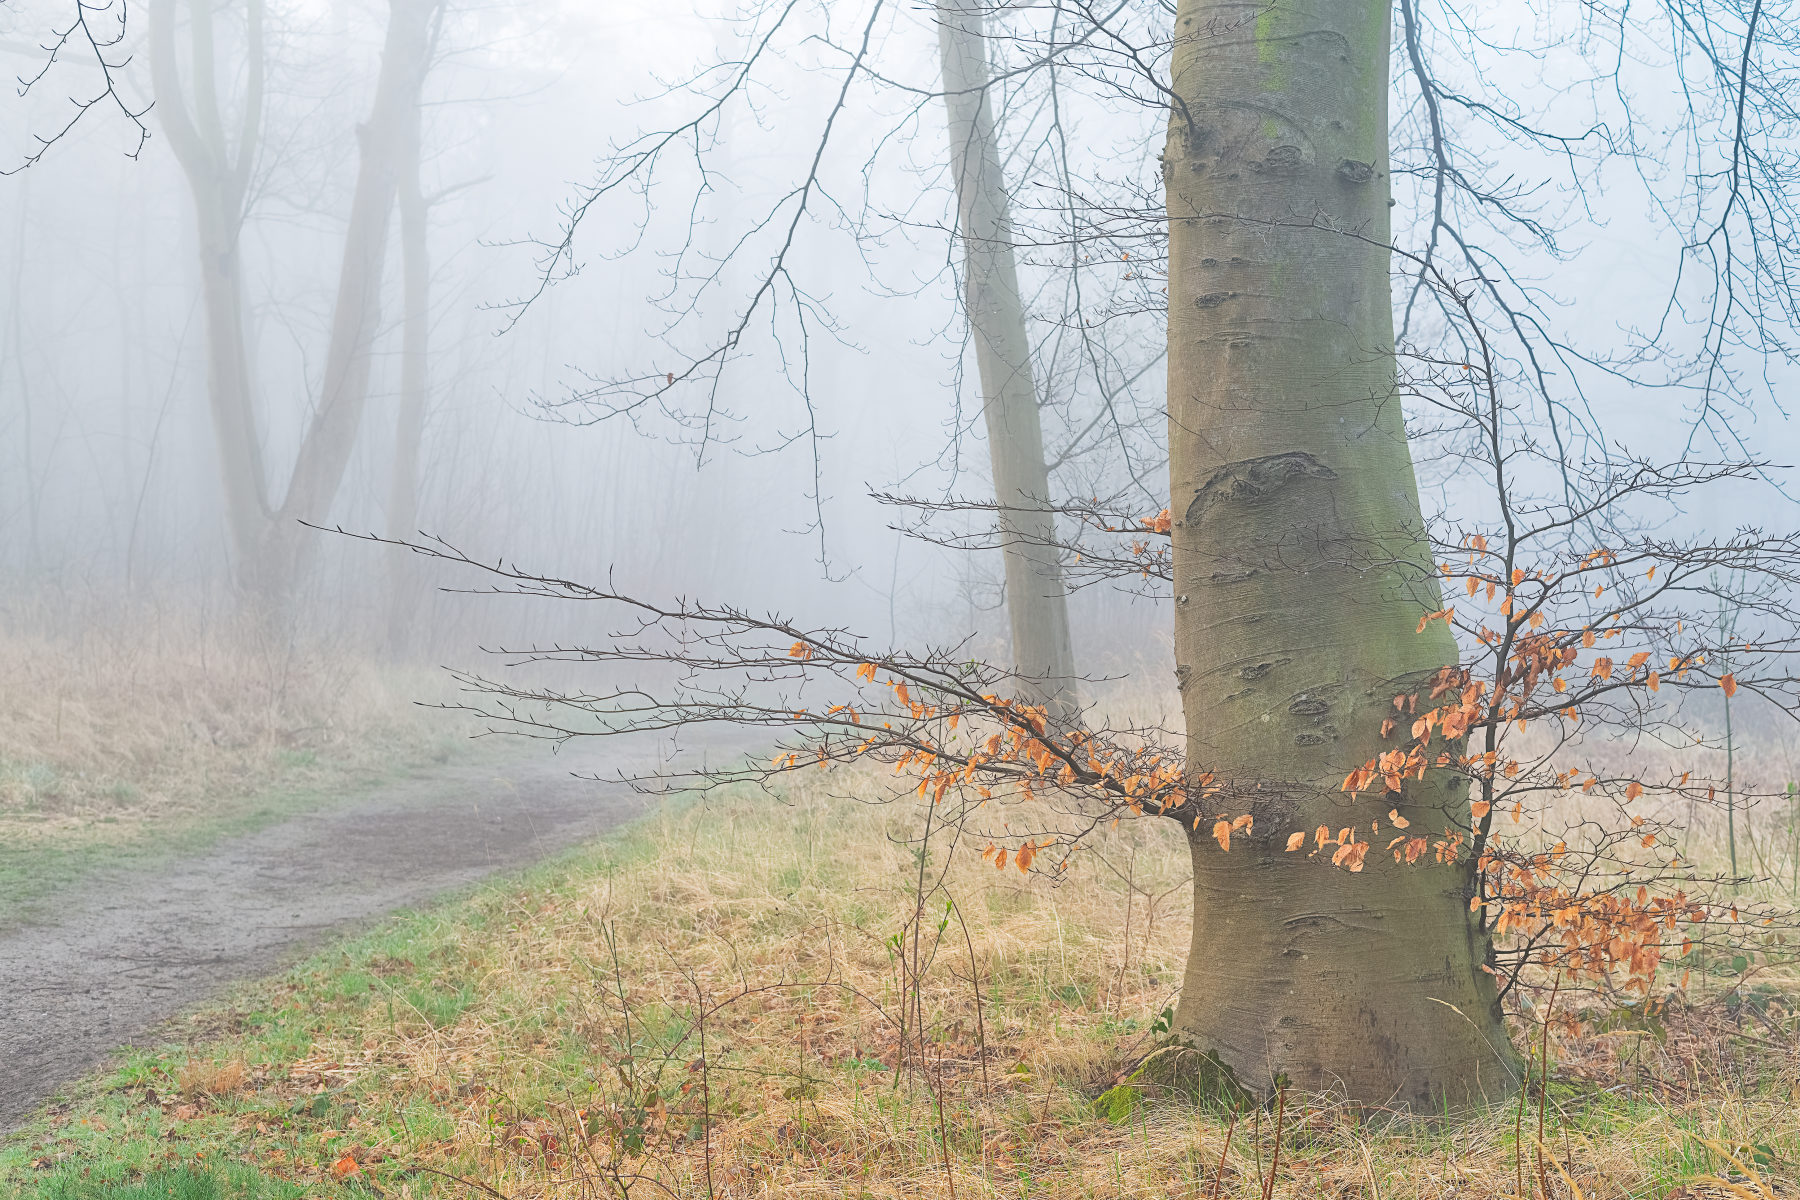 beech tree with persistent leaves in thick fog